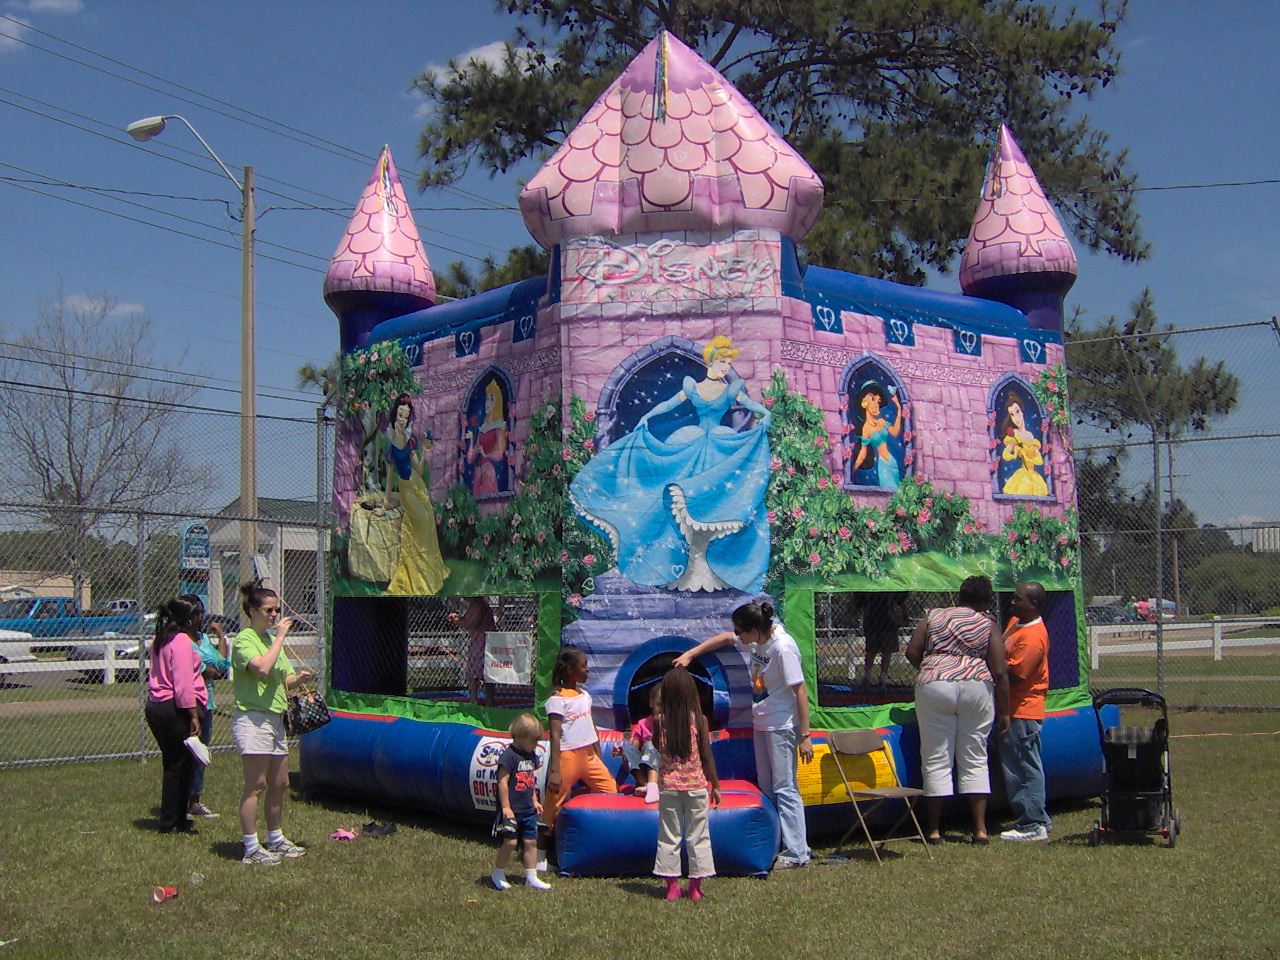 Disney-Princess-bounce-house-supervised